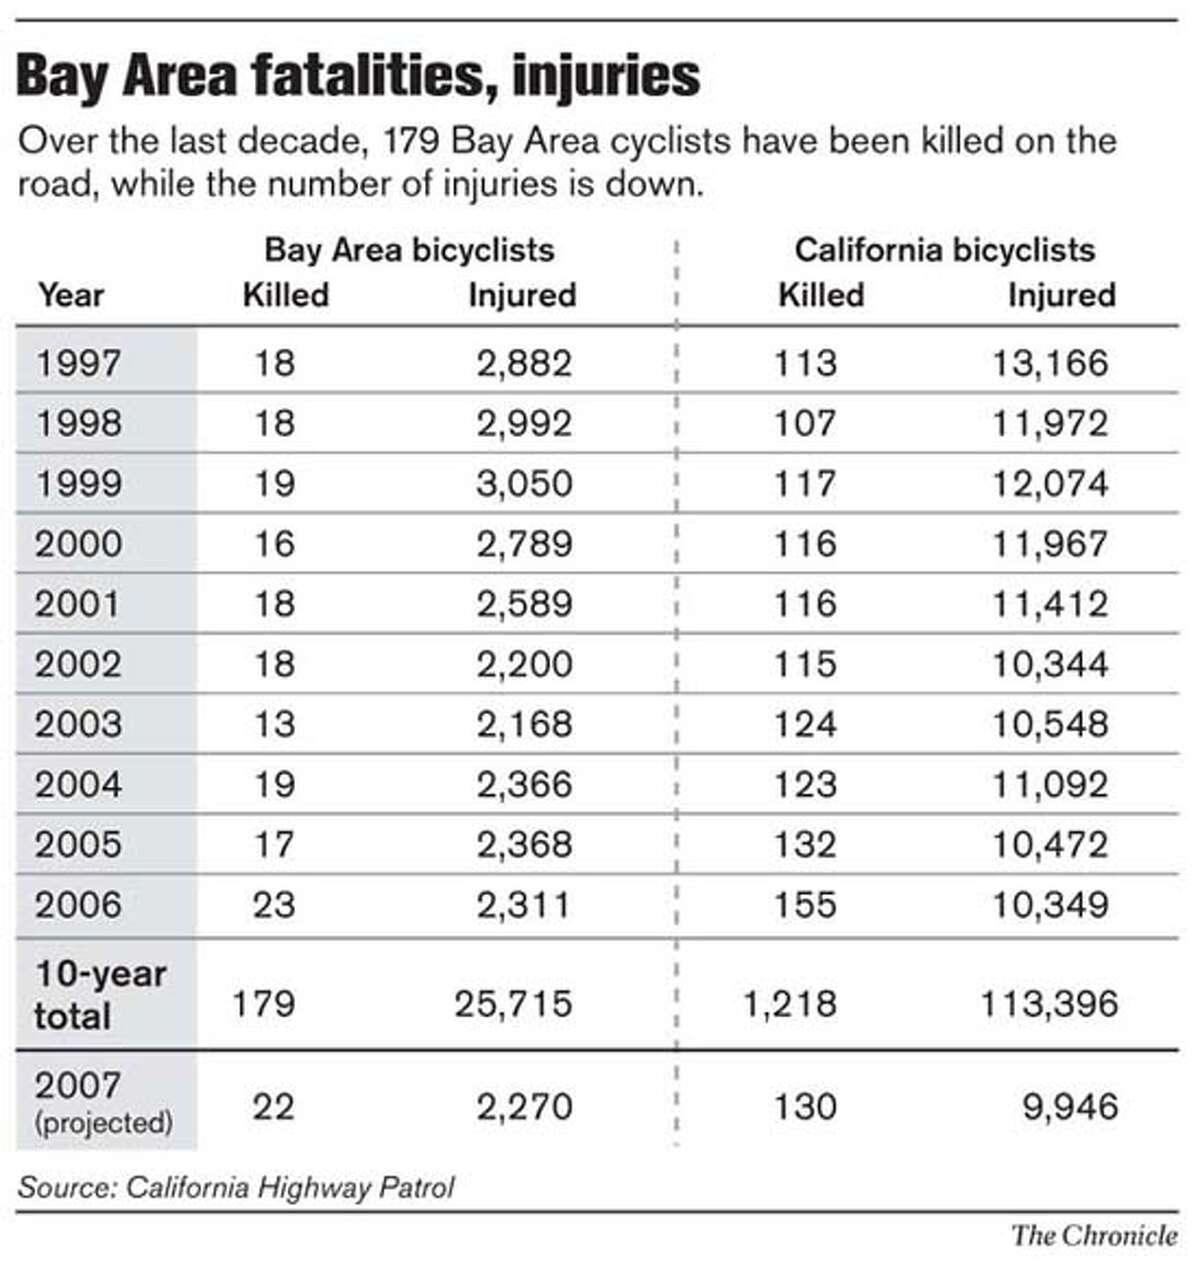 Bay Area fatalities, injuries. Chronicle Graphic